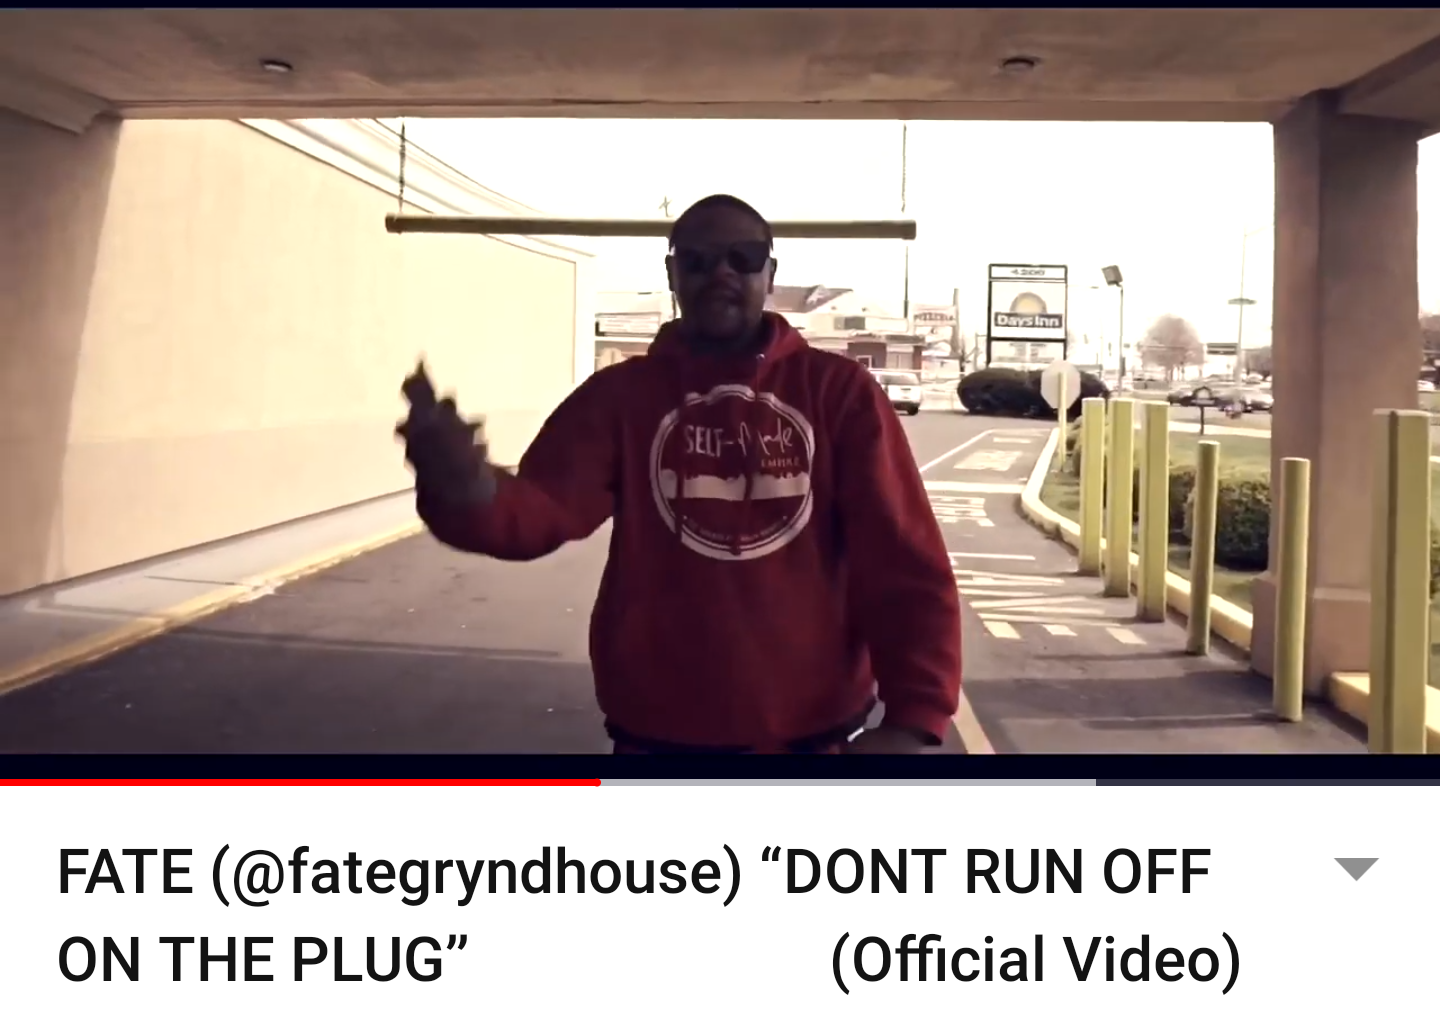 """FATE (@fategryndhouse) """"DONT RUN OFF ON THE PLUG"""" (Official Video)"""